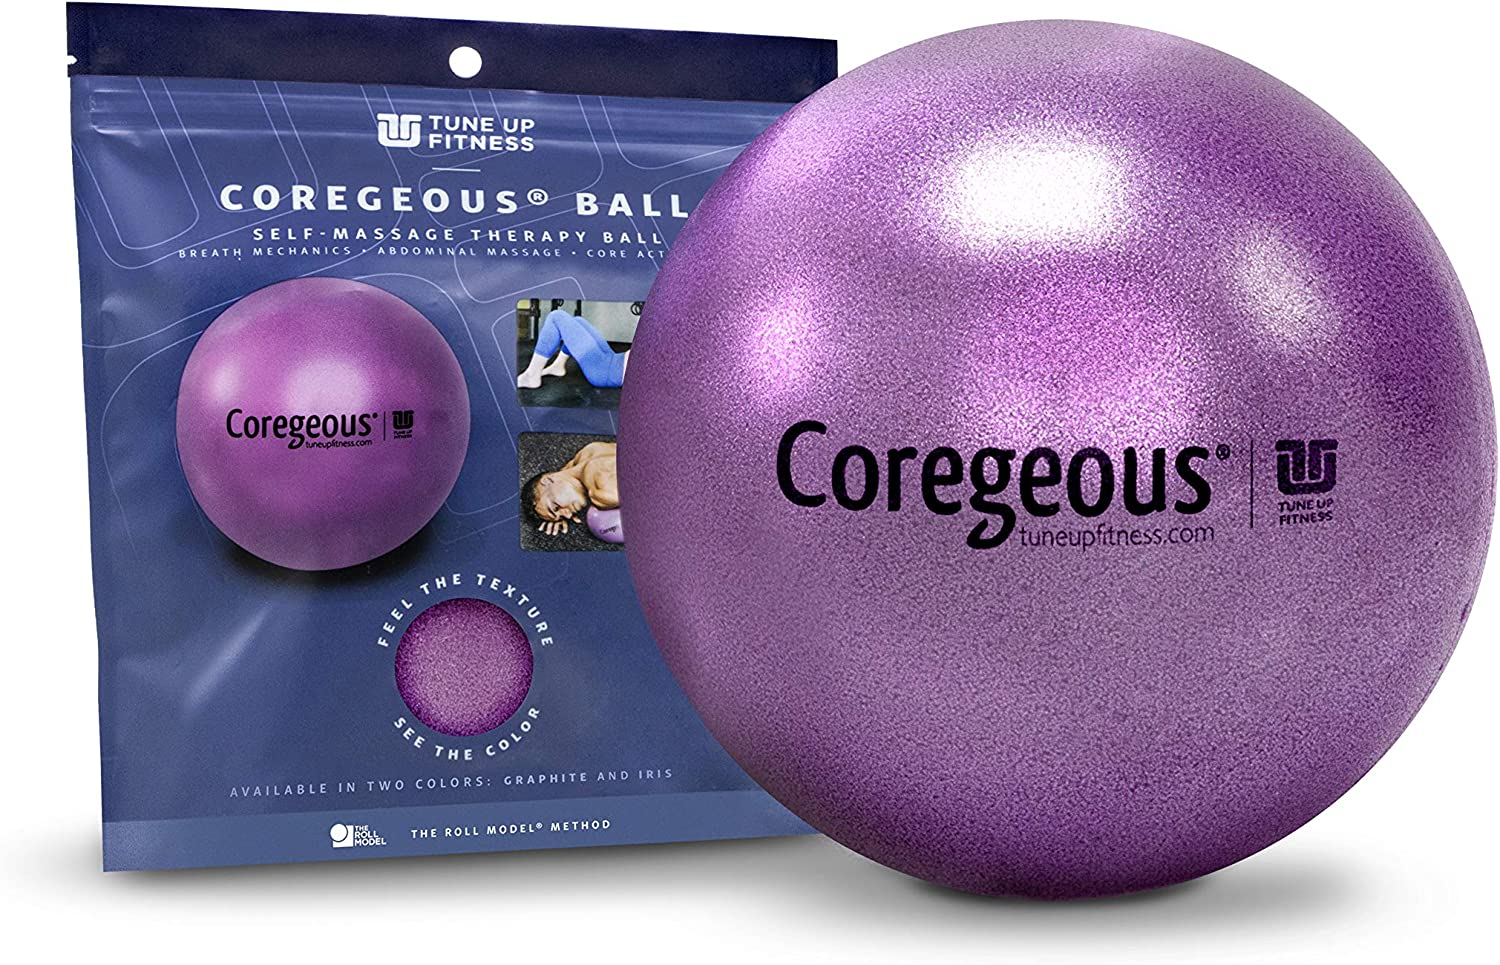 Yoga Up Details about  /Tune Up Fitness Graphite Coregeous Therapy Ball Roll Model Method Used